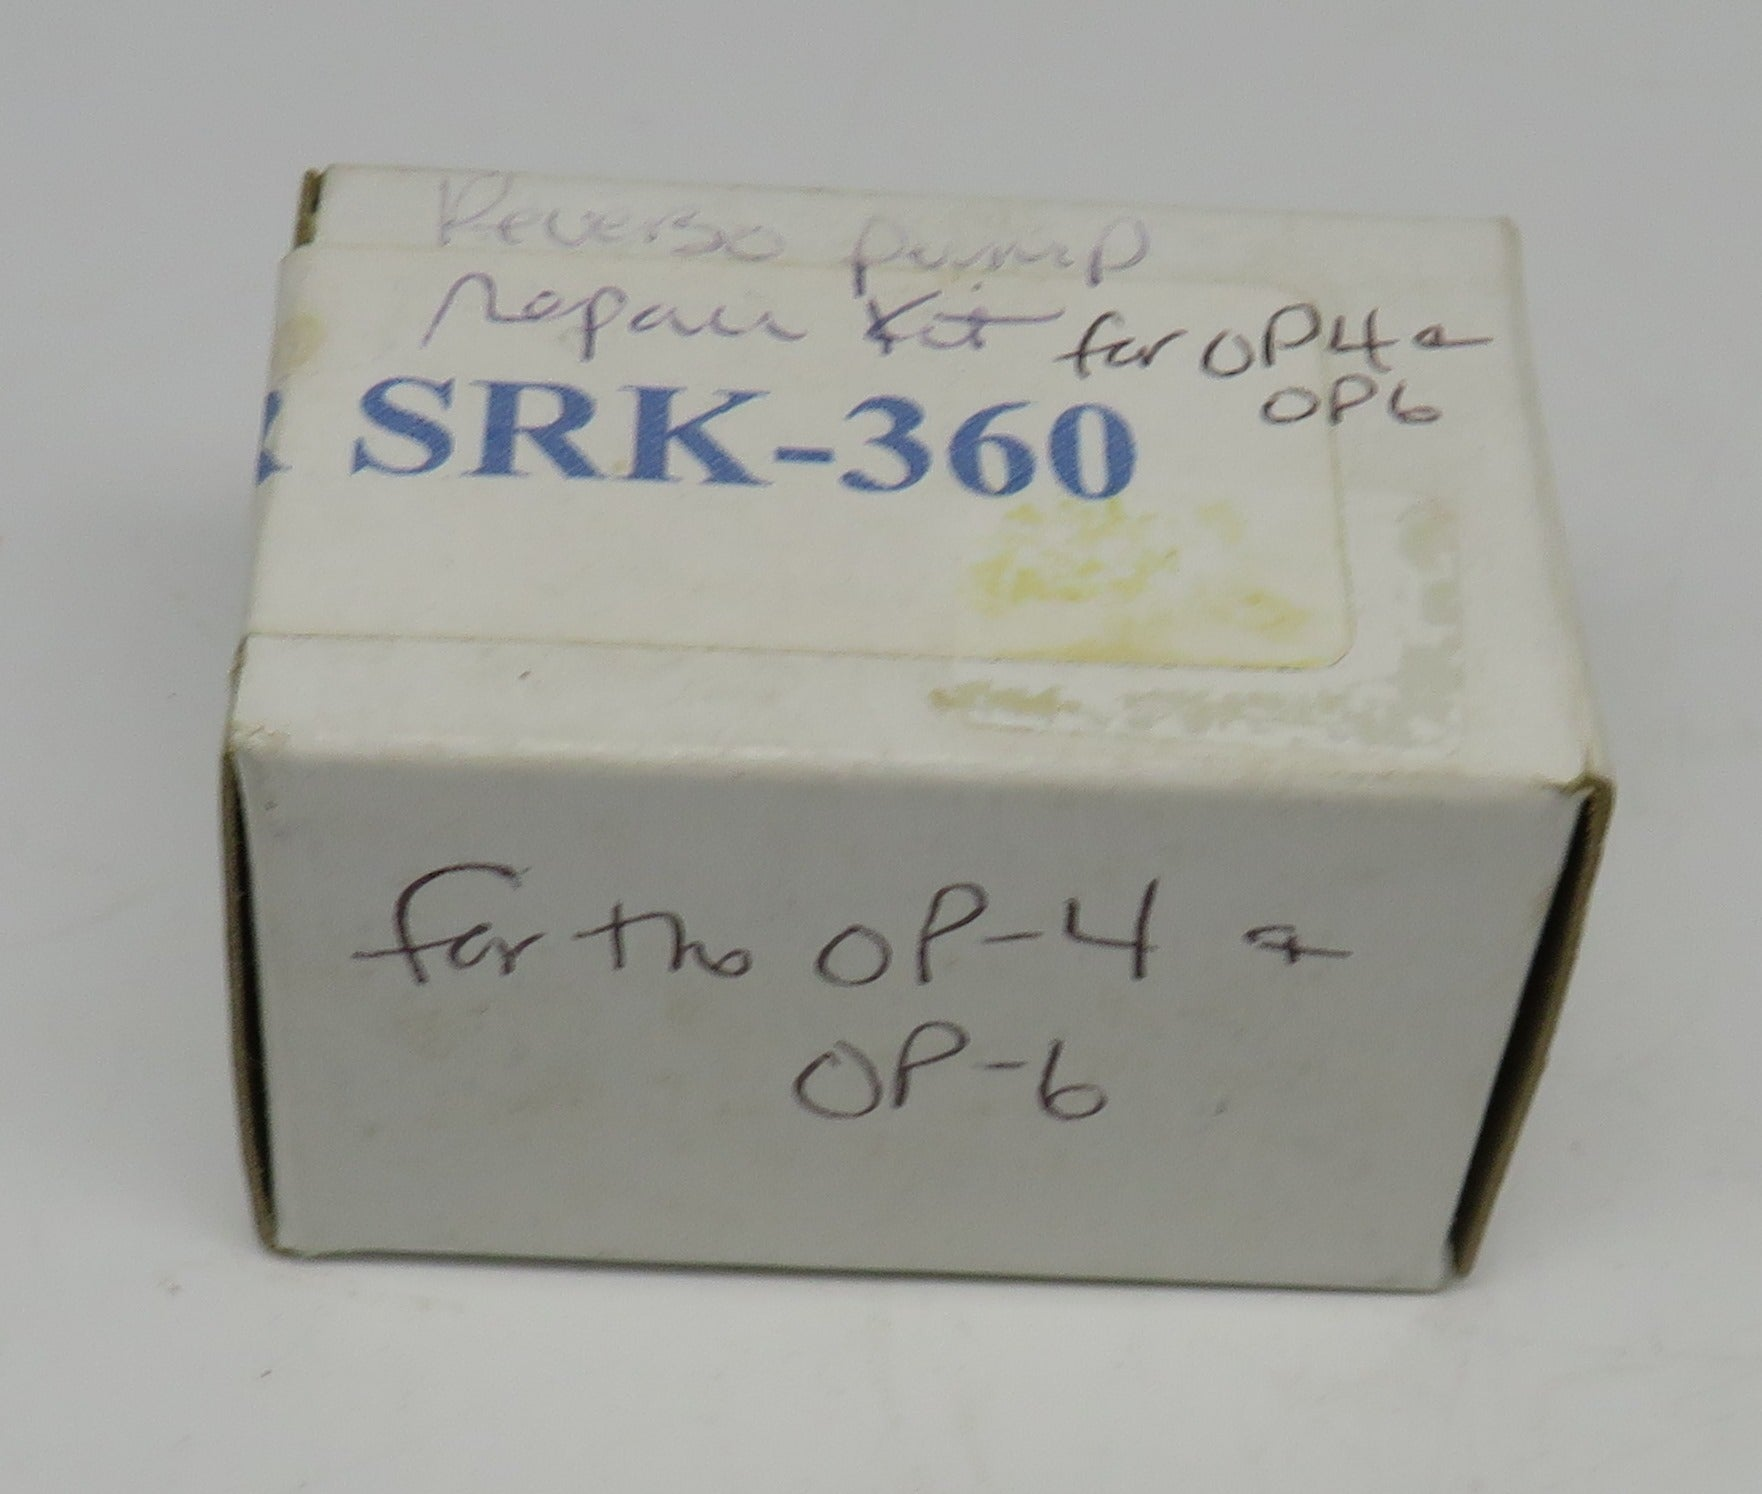 PR SRK-360 Reverso Impeller (PR4 Oil Pump Repair Kit) For the OP-4 & OP-6